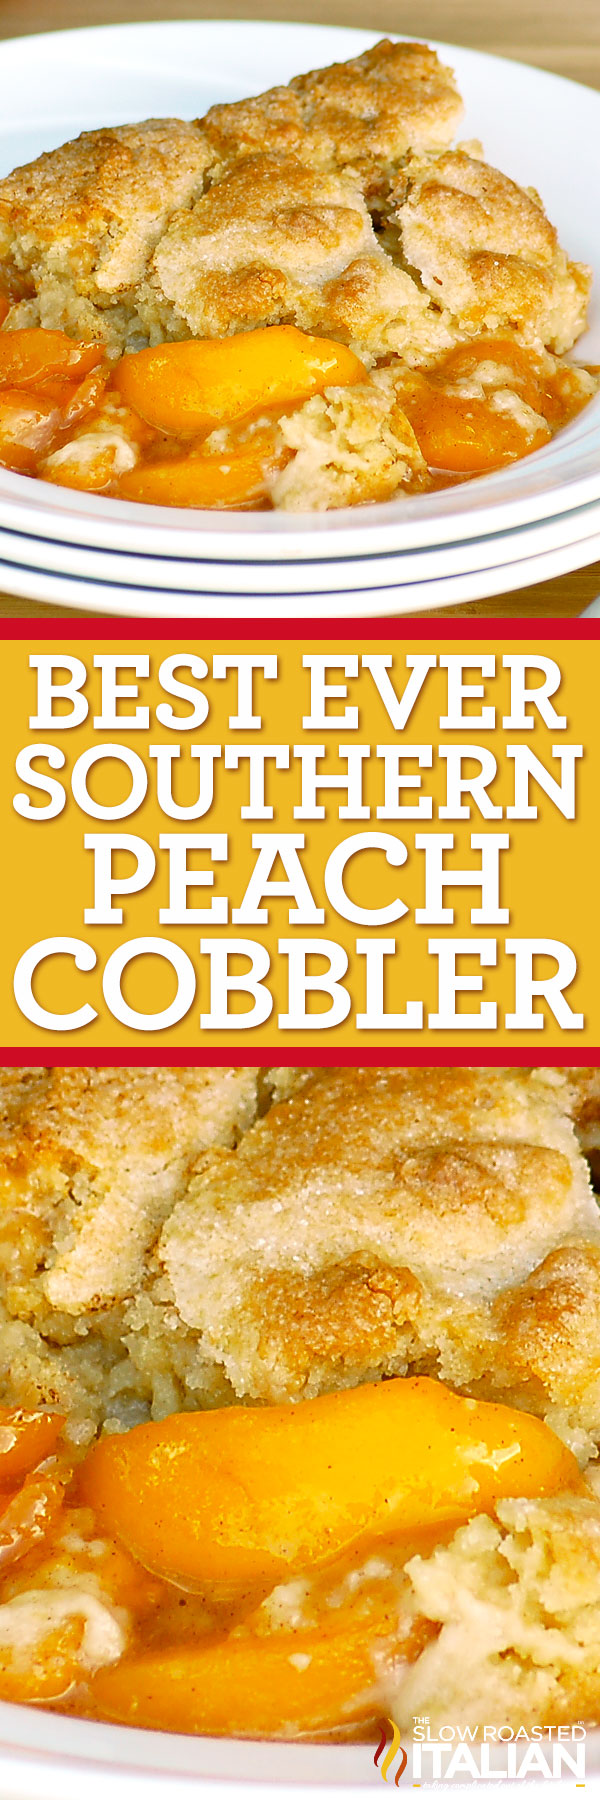 titled image (and shown): Best Peach Cobbler